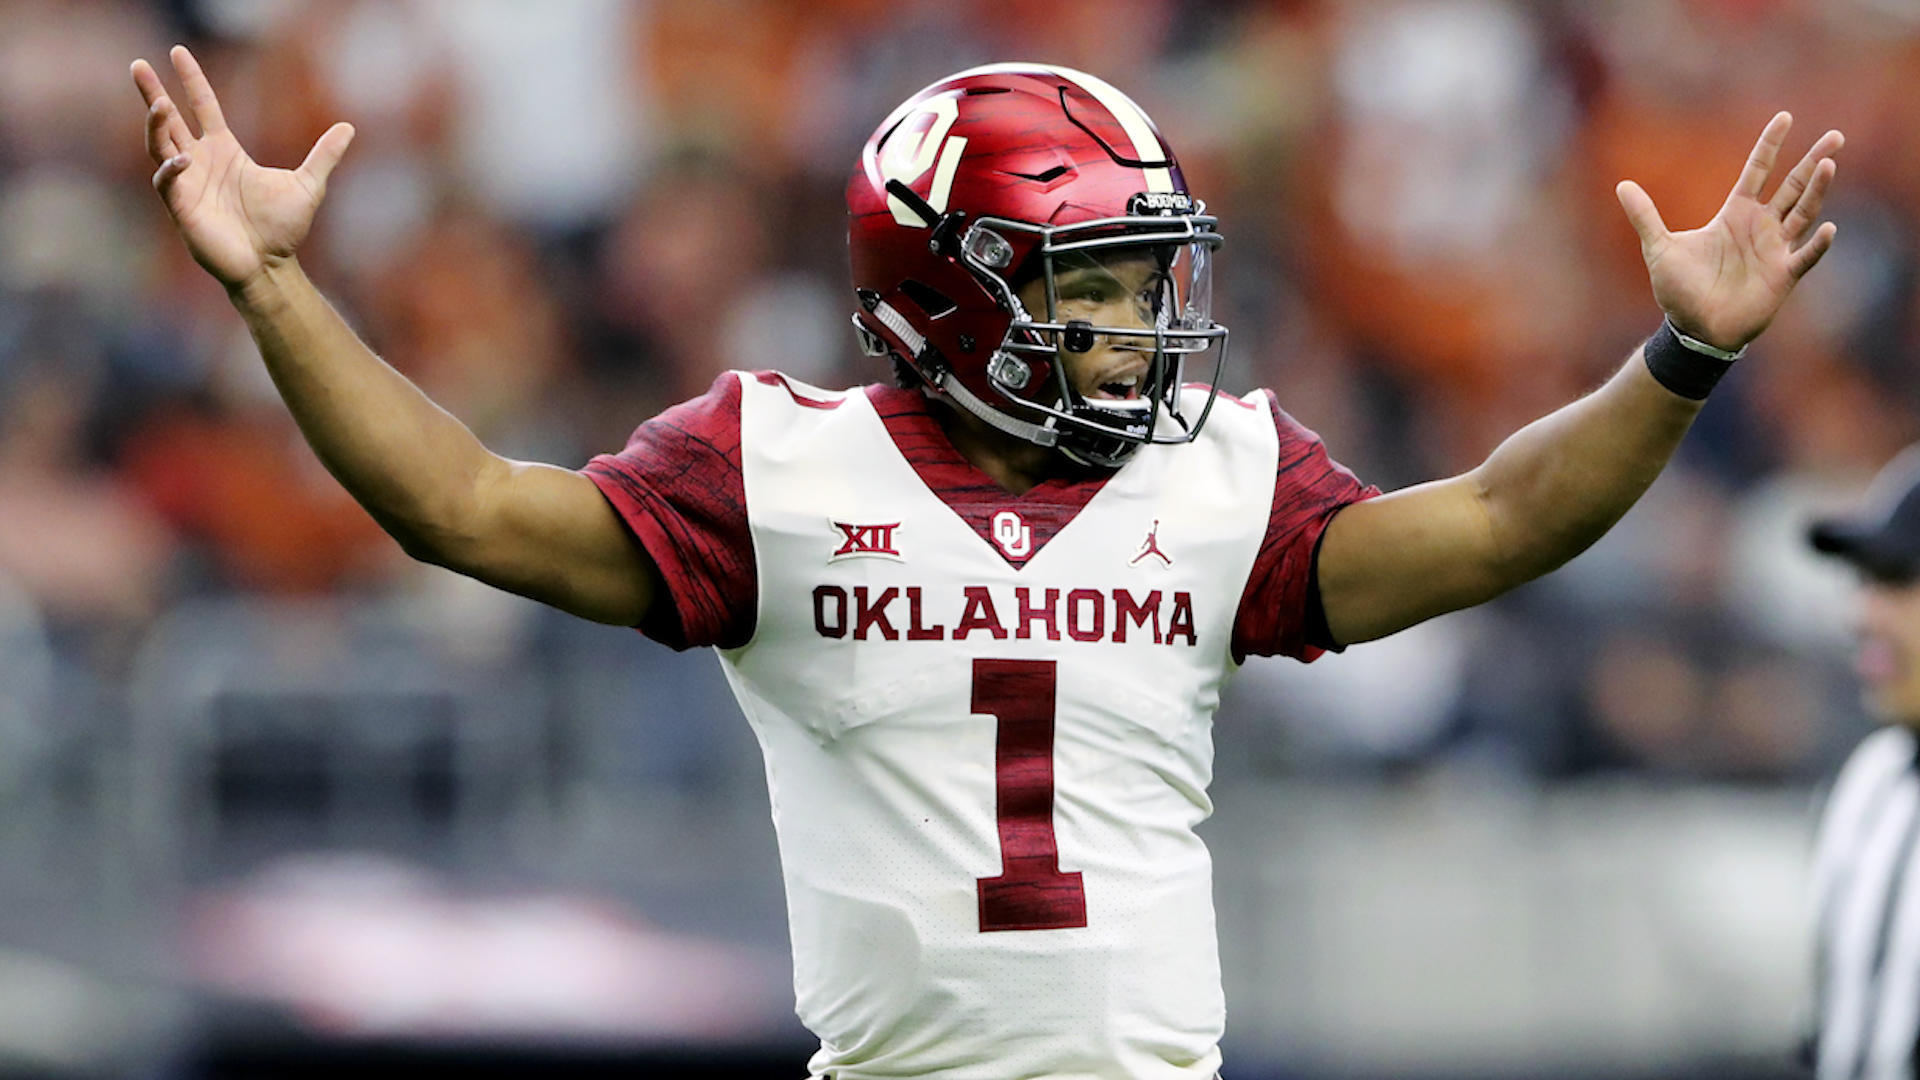 2019 NFL Draft odds: Top prop bets, picks, predictions: Go Under 6.5 defensive players in top 10